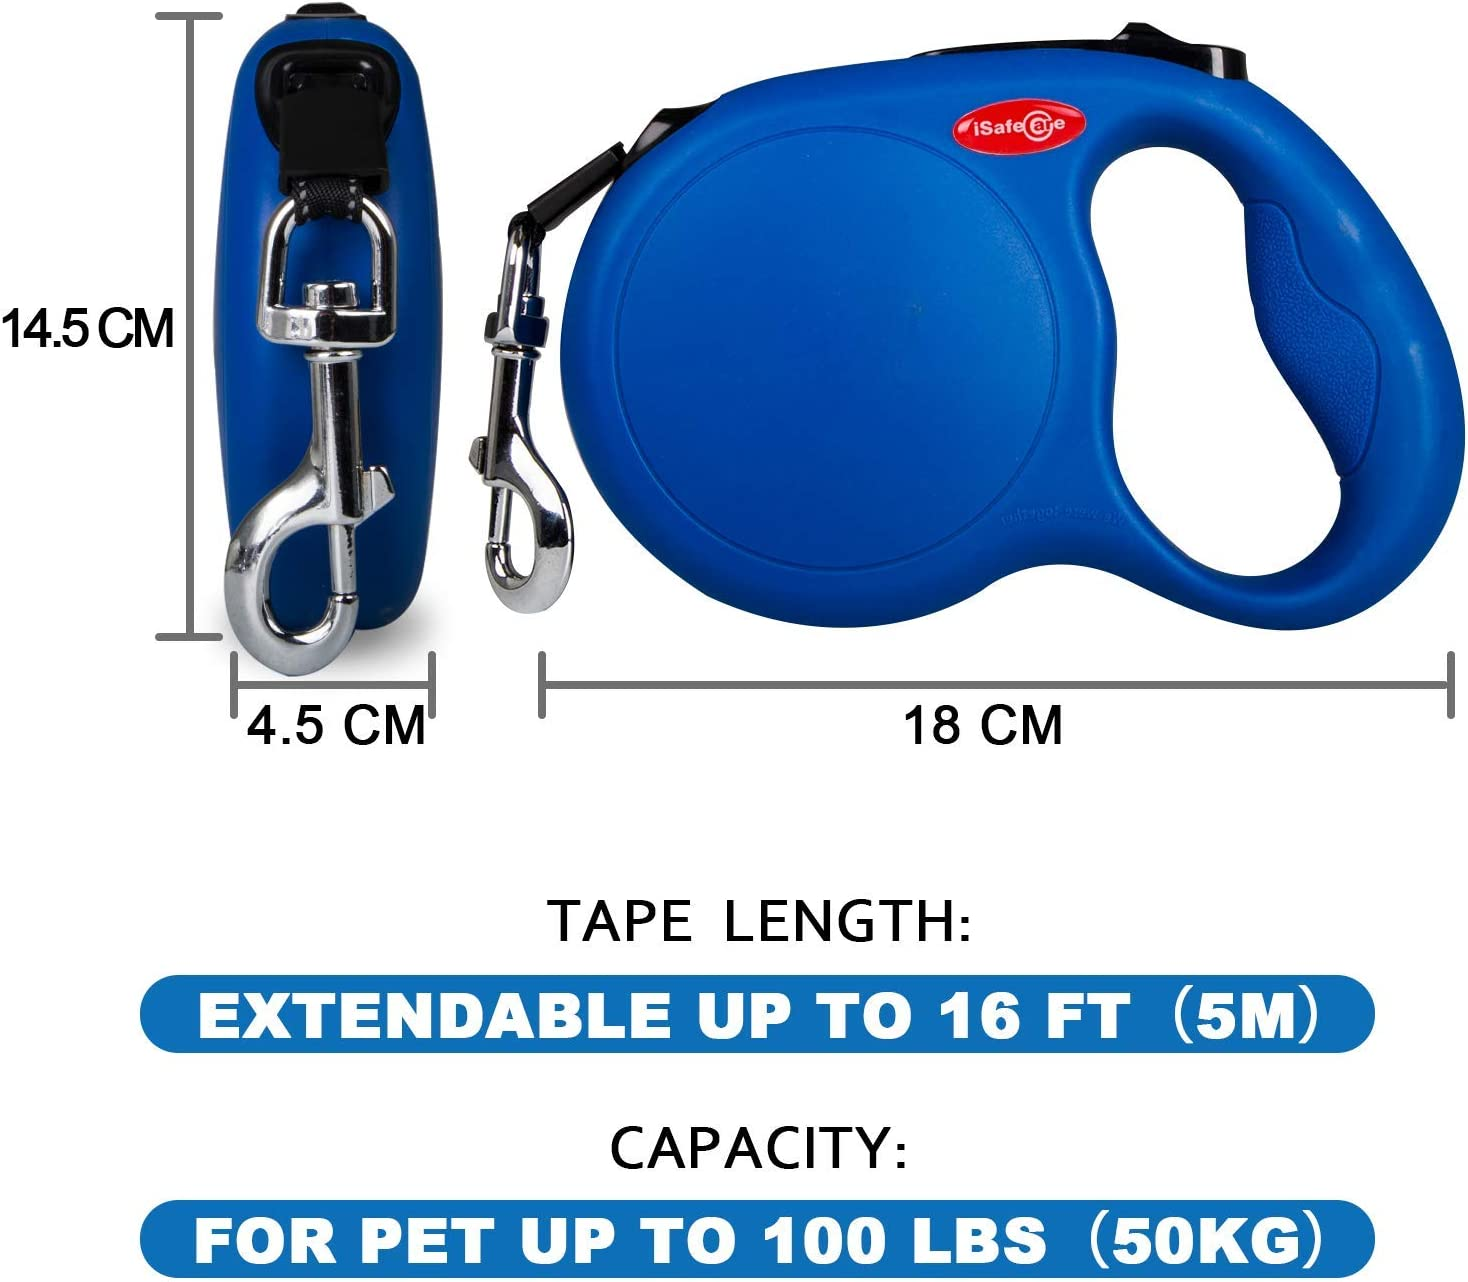 iSafeCare Heavy Duty Automatic 12ft//16ft Retractable Dog Leash for Small Medium Large Breeds up to 110lbs Reflective Nylon Tape 360/° Tangle Free Extendable Pet Walking Training Lead